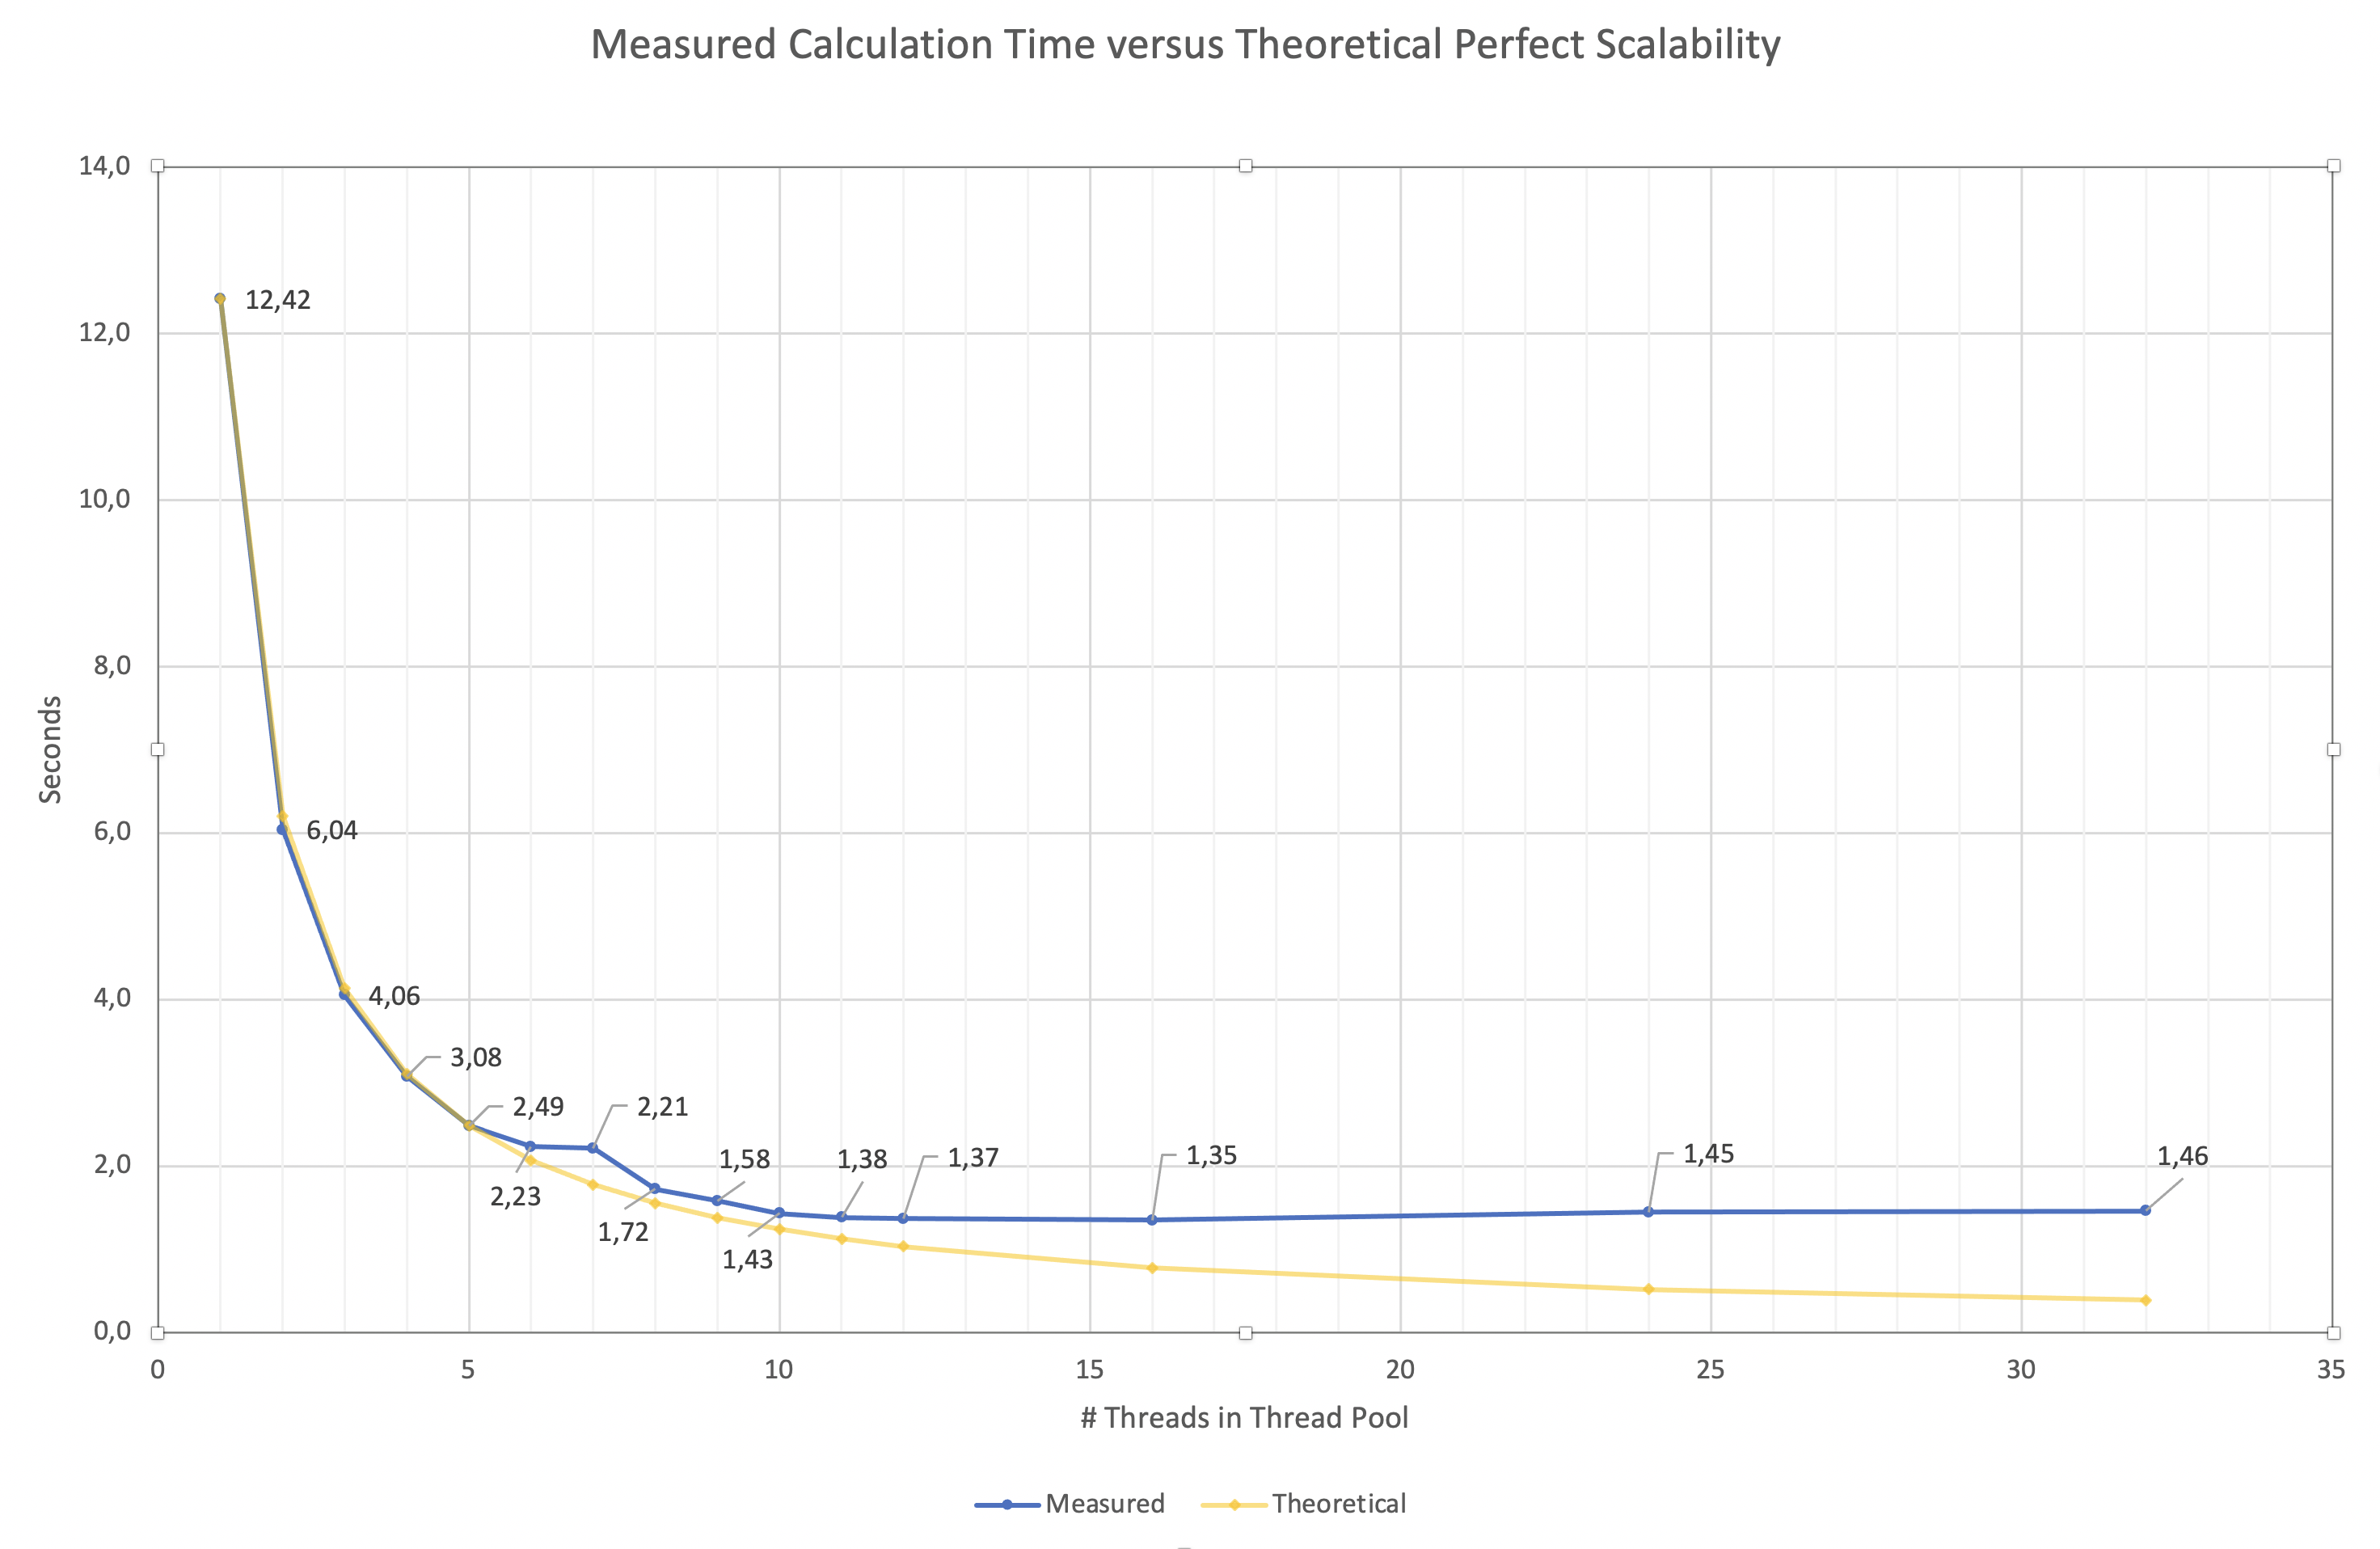 Measured versus theoretical scaling in function of Thread Pool size